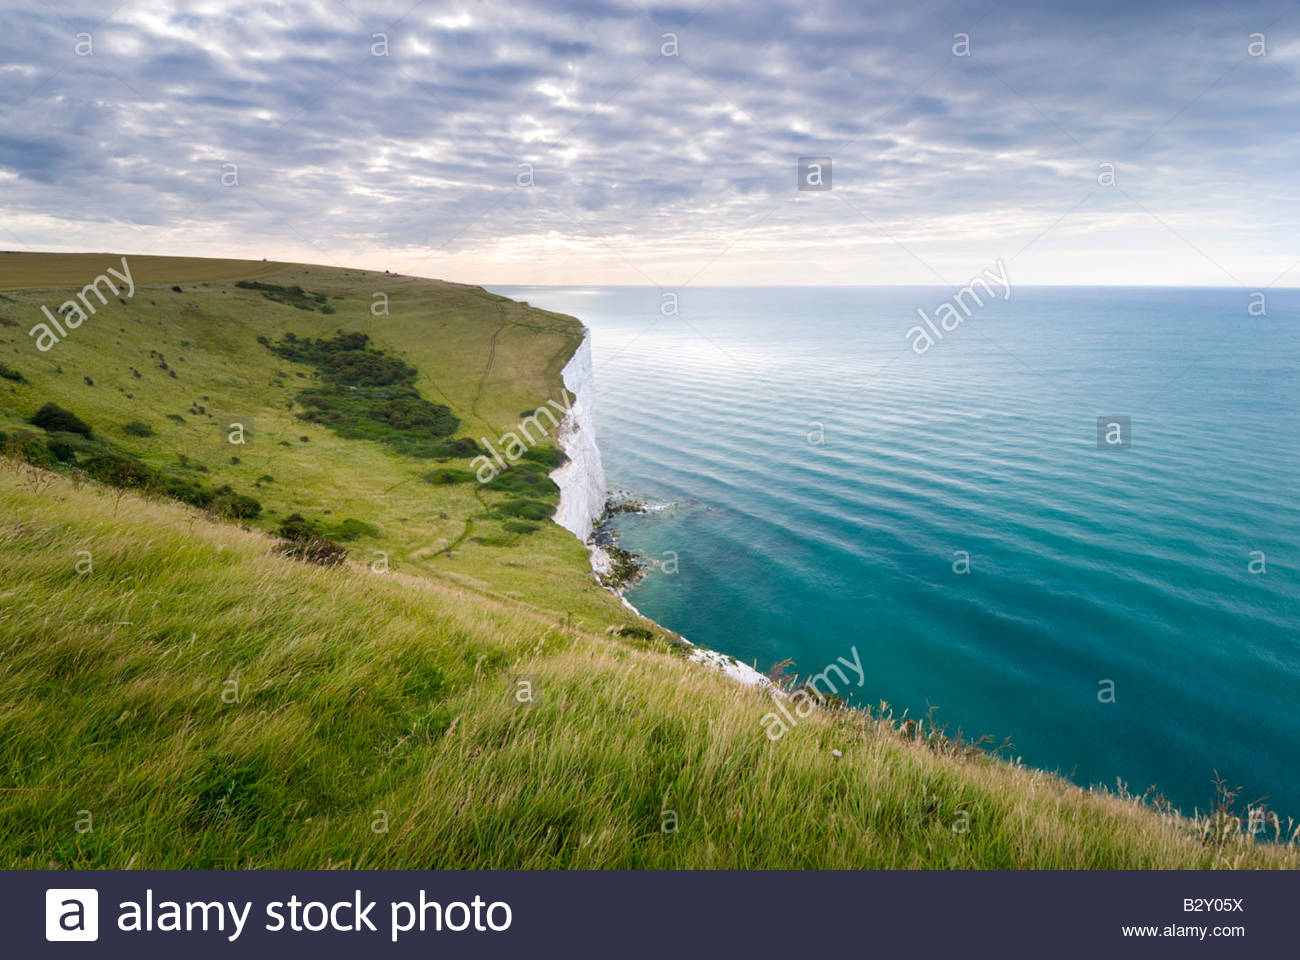 The White Cliffs of Dover, Kent, England, UK. - Stock Image